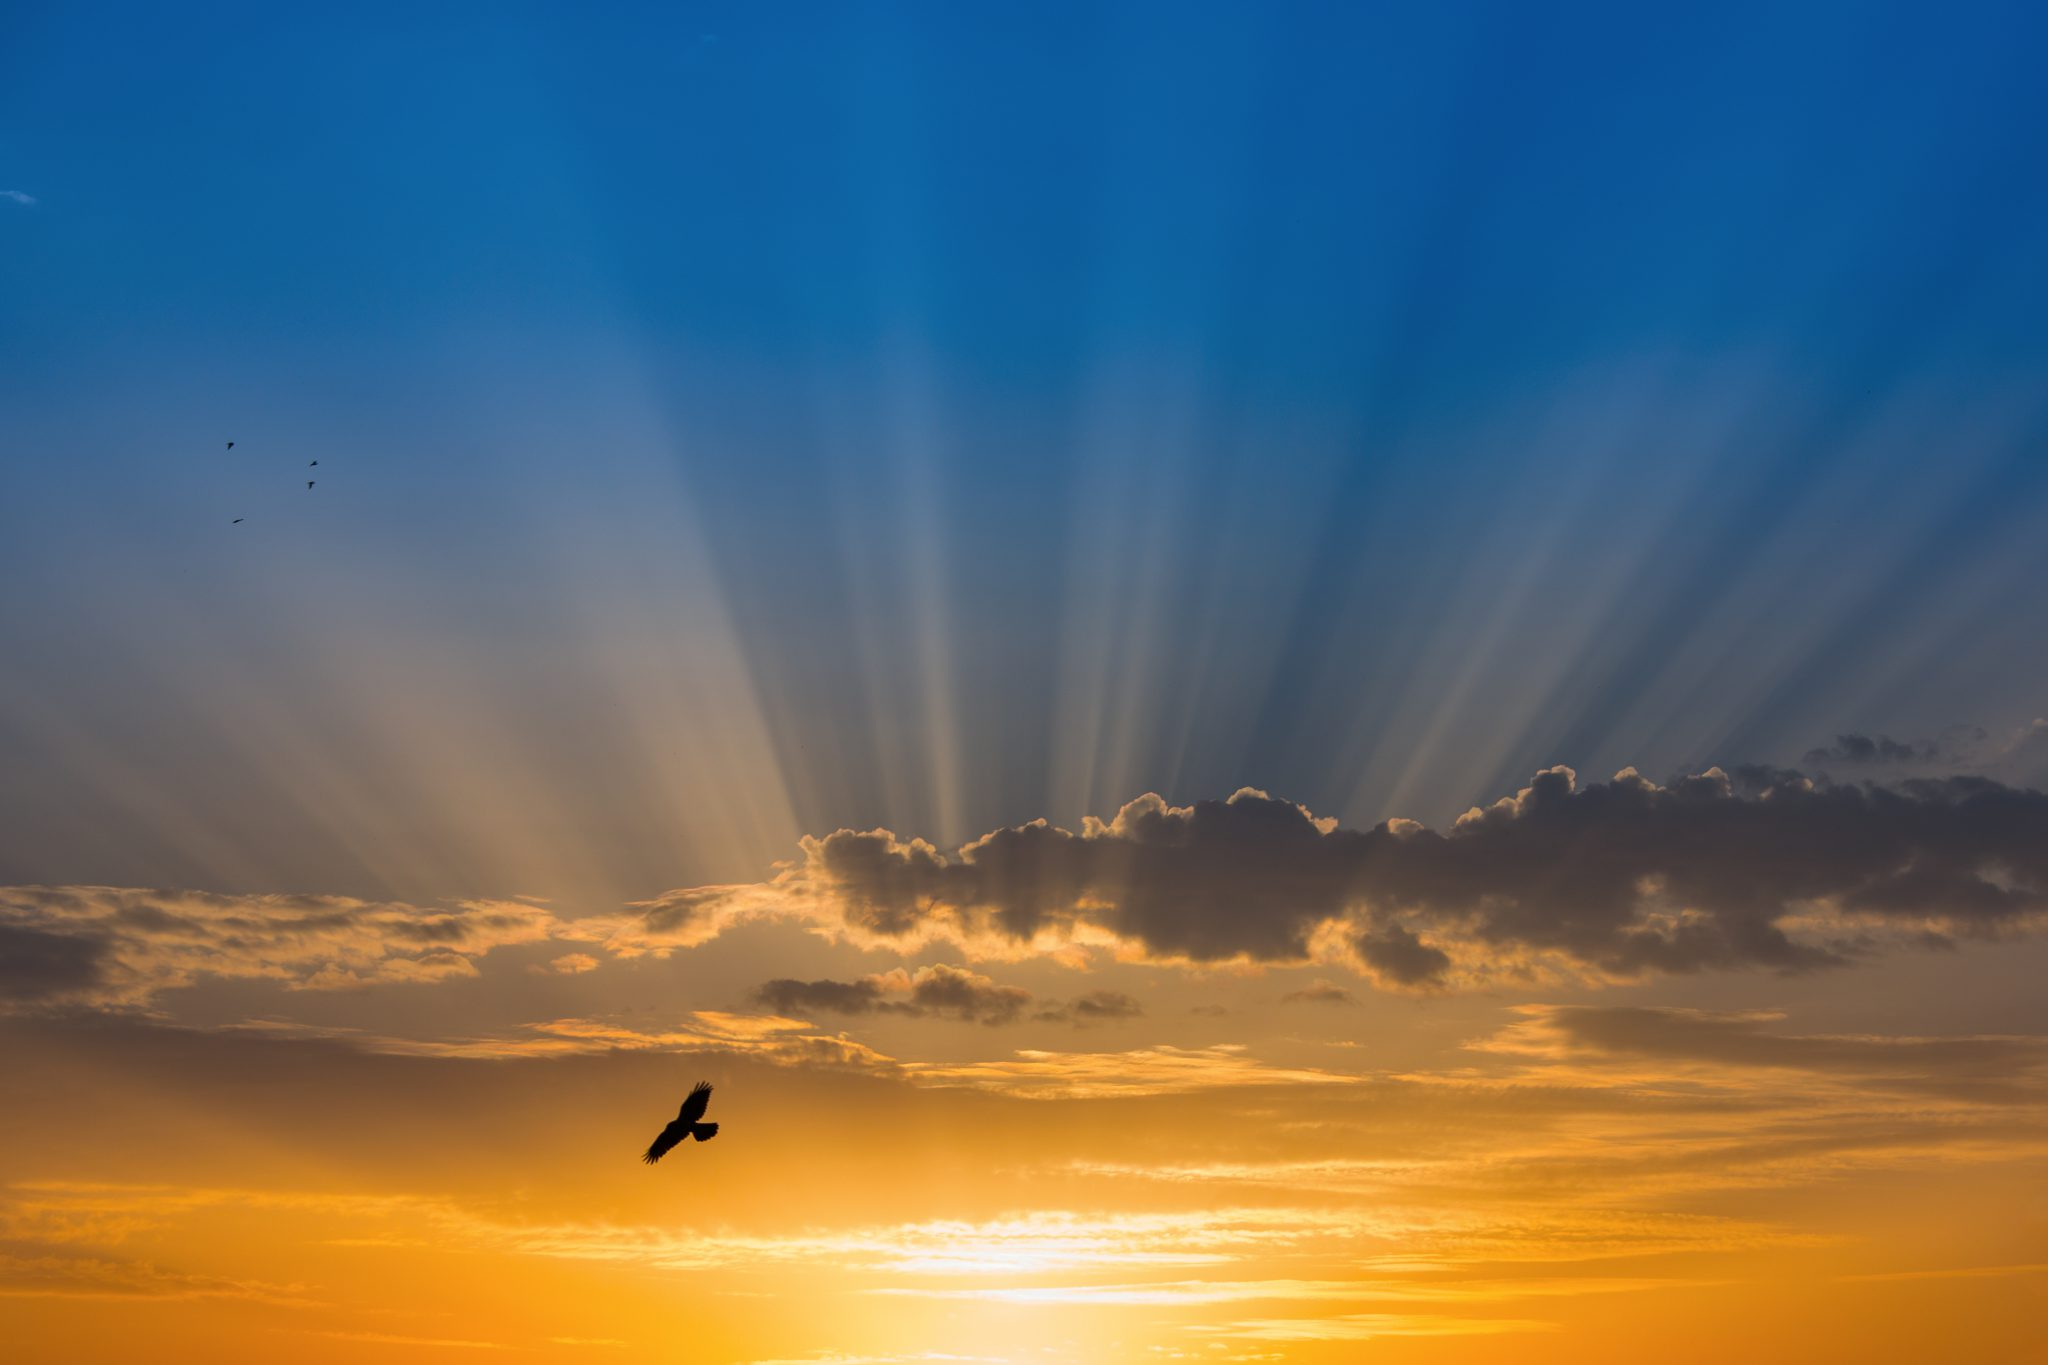 Bird over rays of light in blue sky inspiration for Populist Cleaning Co. logo